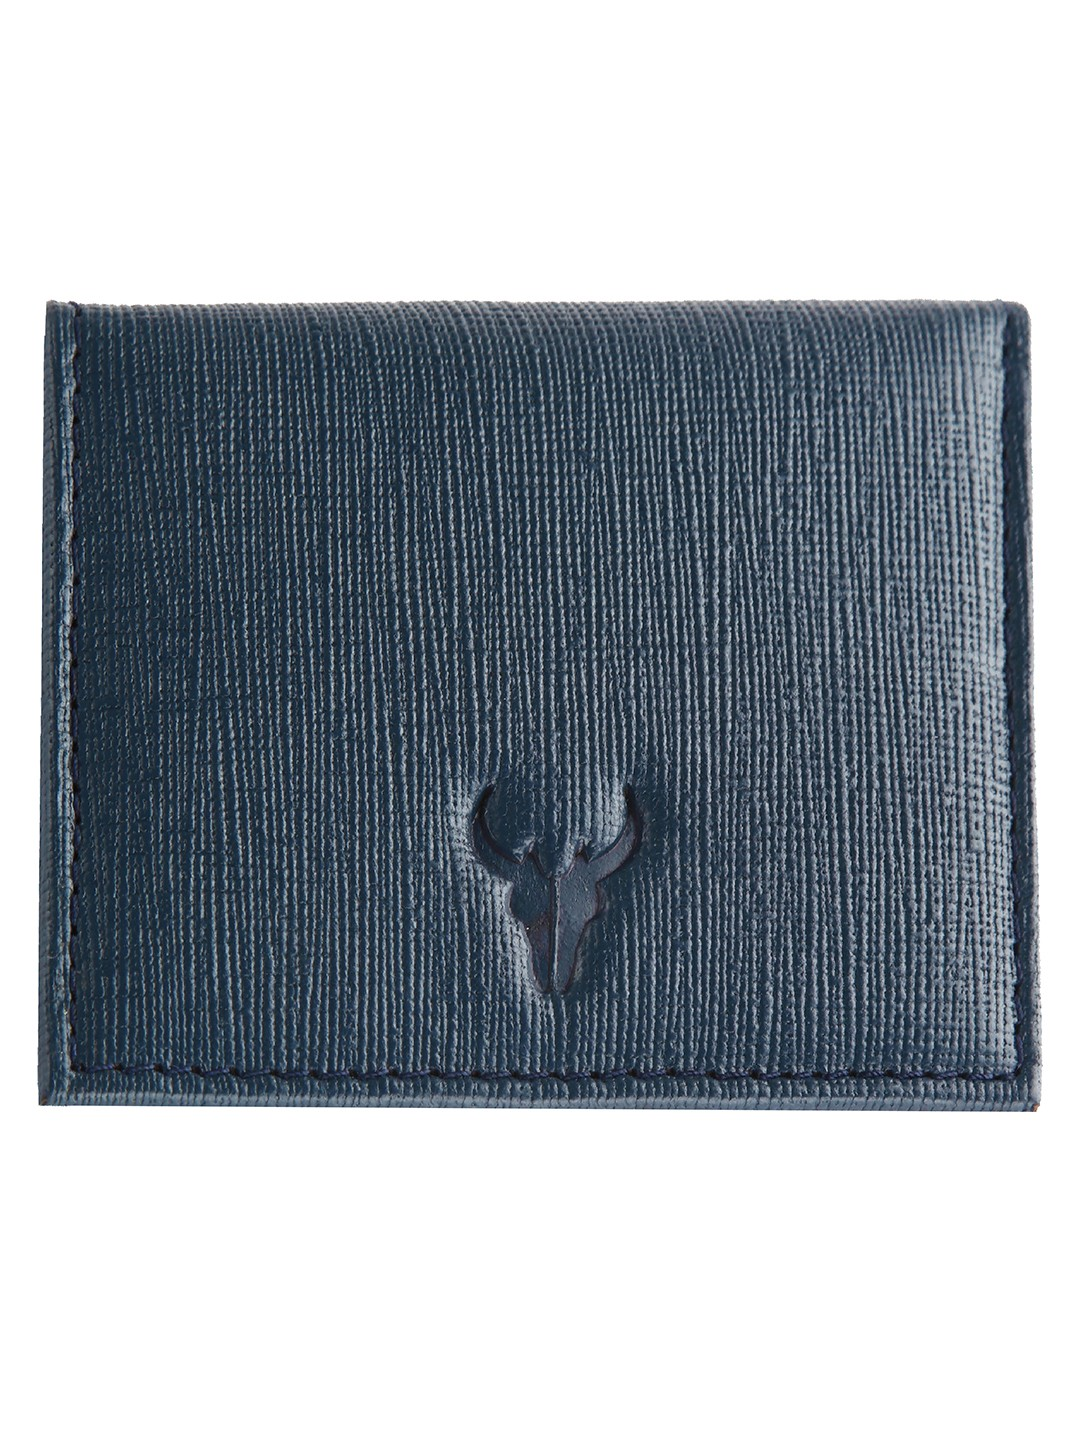 Napa Hide | Napa Hide RFID Protected Genuine High Quality Leather Blue Safiano Wallet for Men